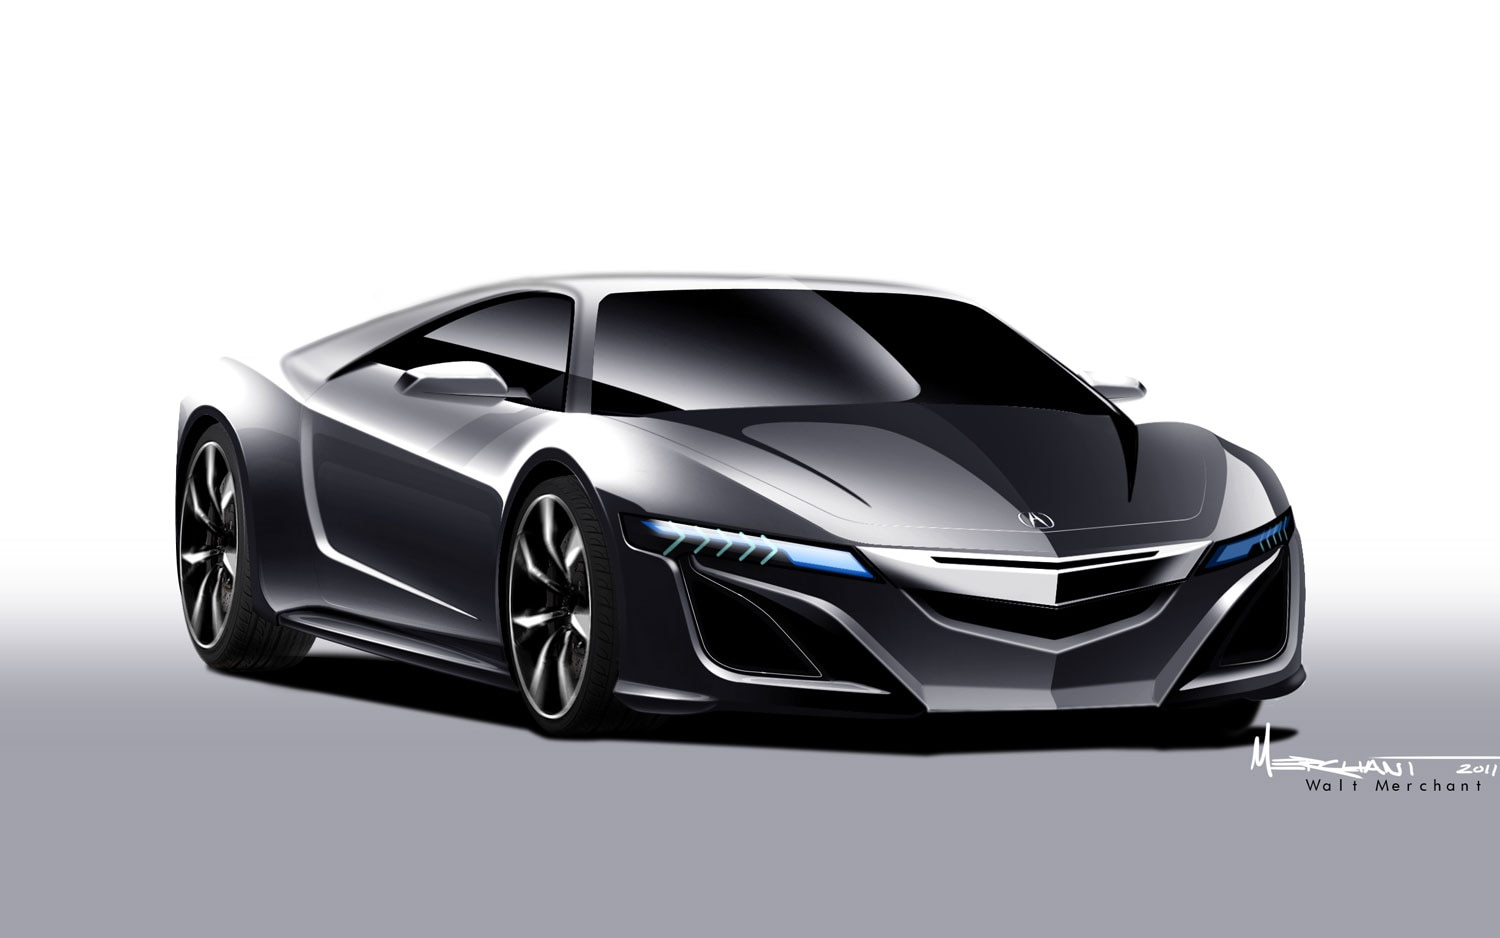 2015 acura nsx conceptual rendering front view